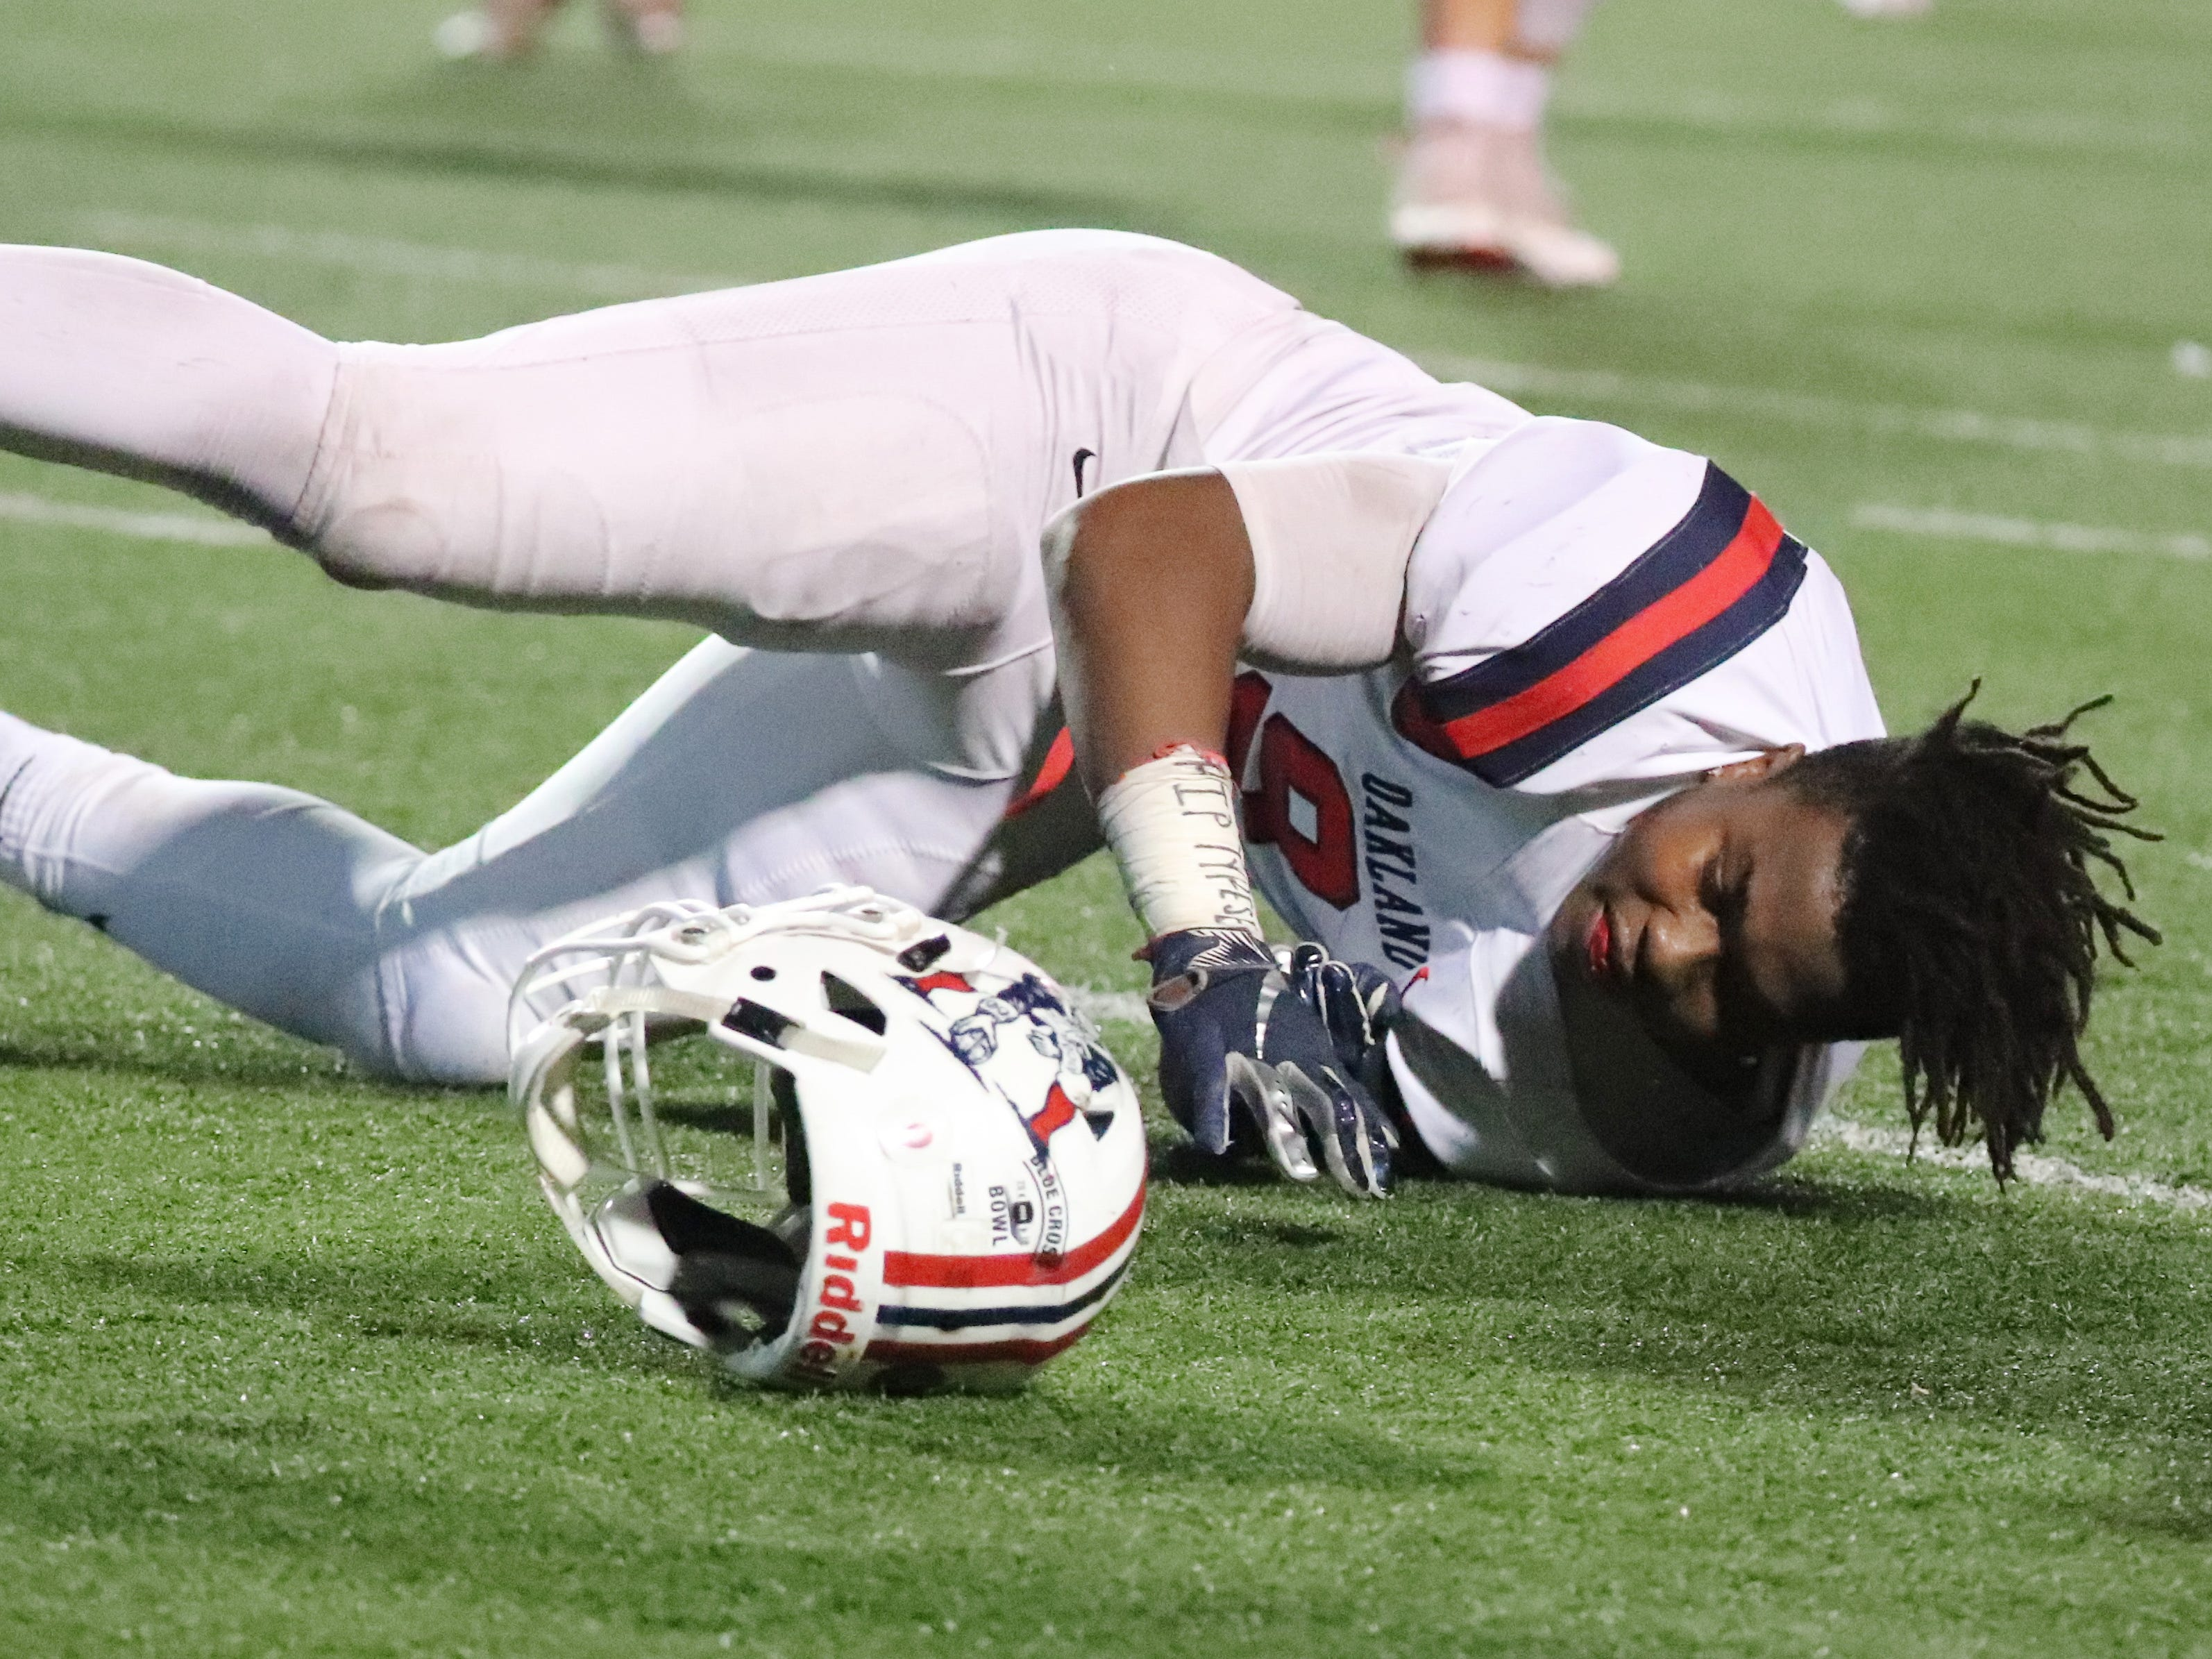 Oakland's Tekoy Randolph (9) just misses a catch and loses his helmet at the same time in the first half at the Class 6A BlueCross Bowl state championship at Tennessee Tech's Tucker Stadium in Cookeville, Tenn., on Thursday, Nov. 29, 2018.